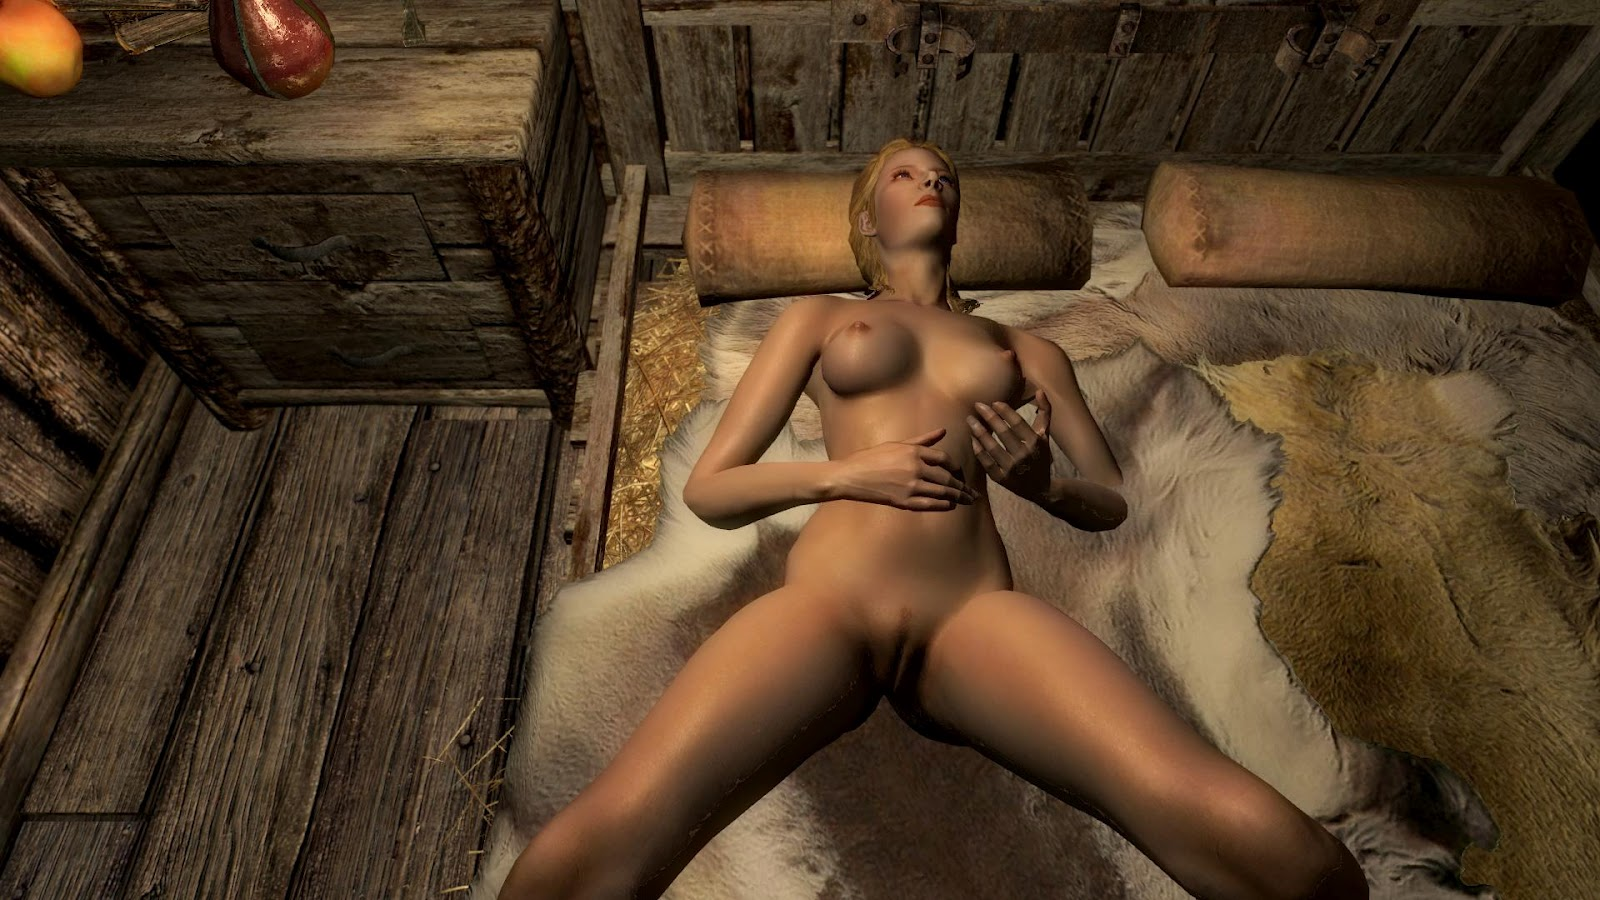 Nude women skyrim erotic photo